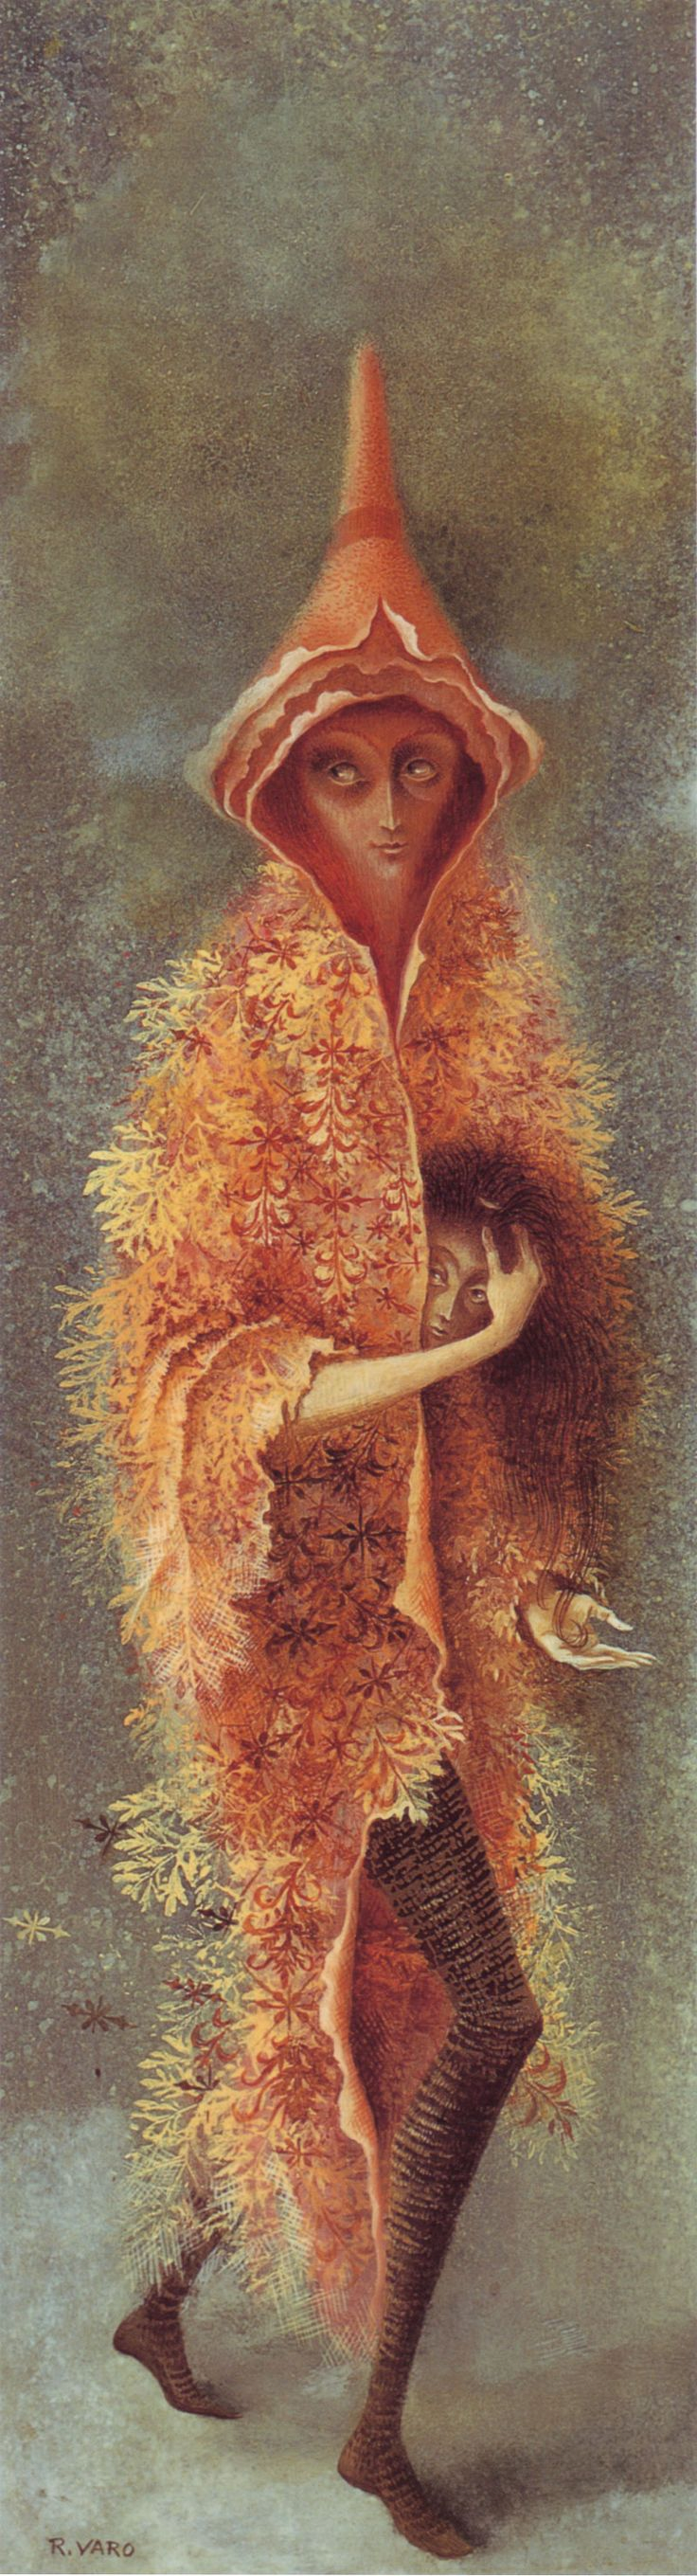 'Personaje,' painting in oil on masonite by Remedios Varo, 1959.